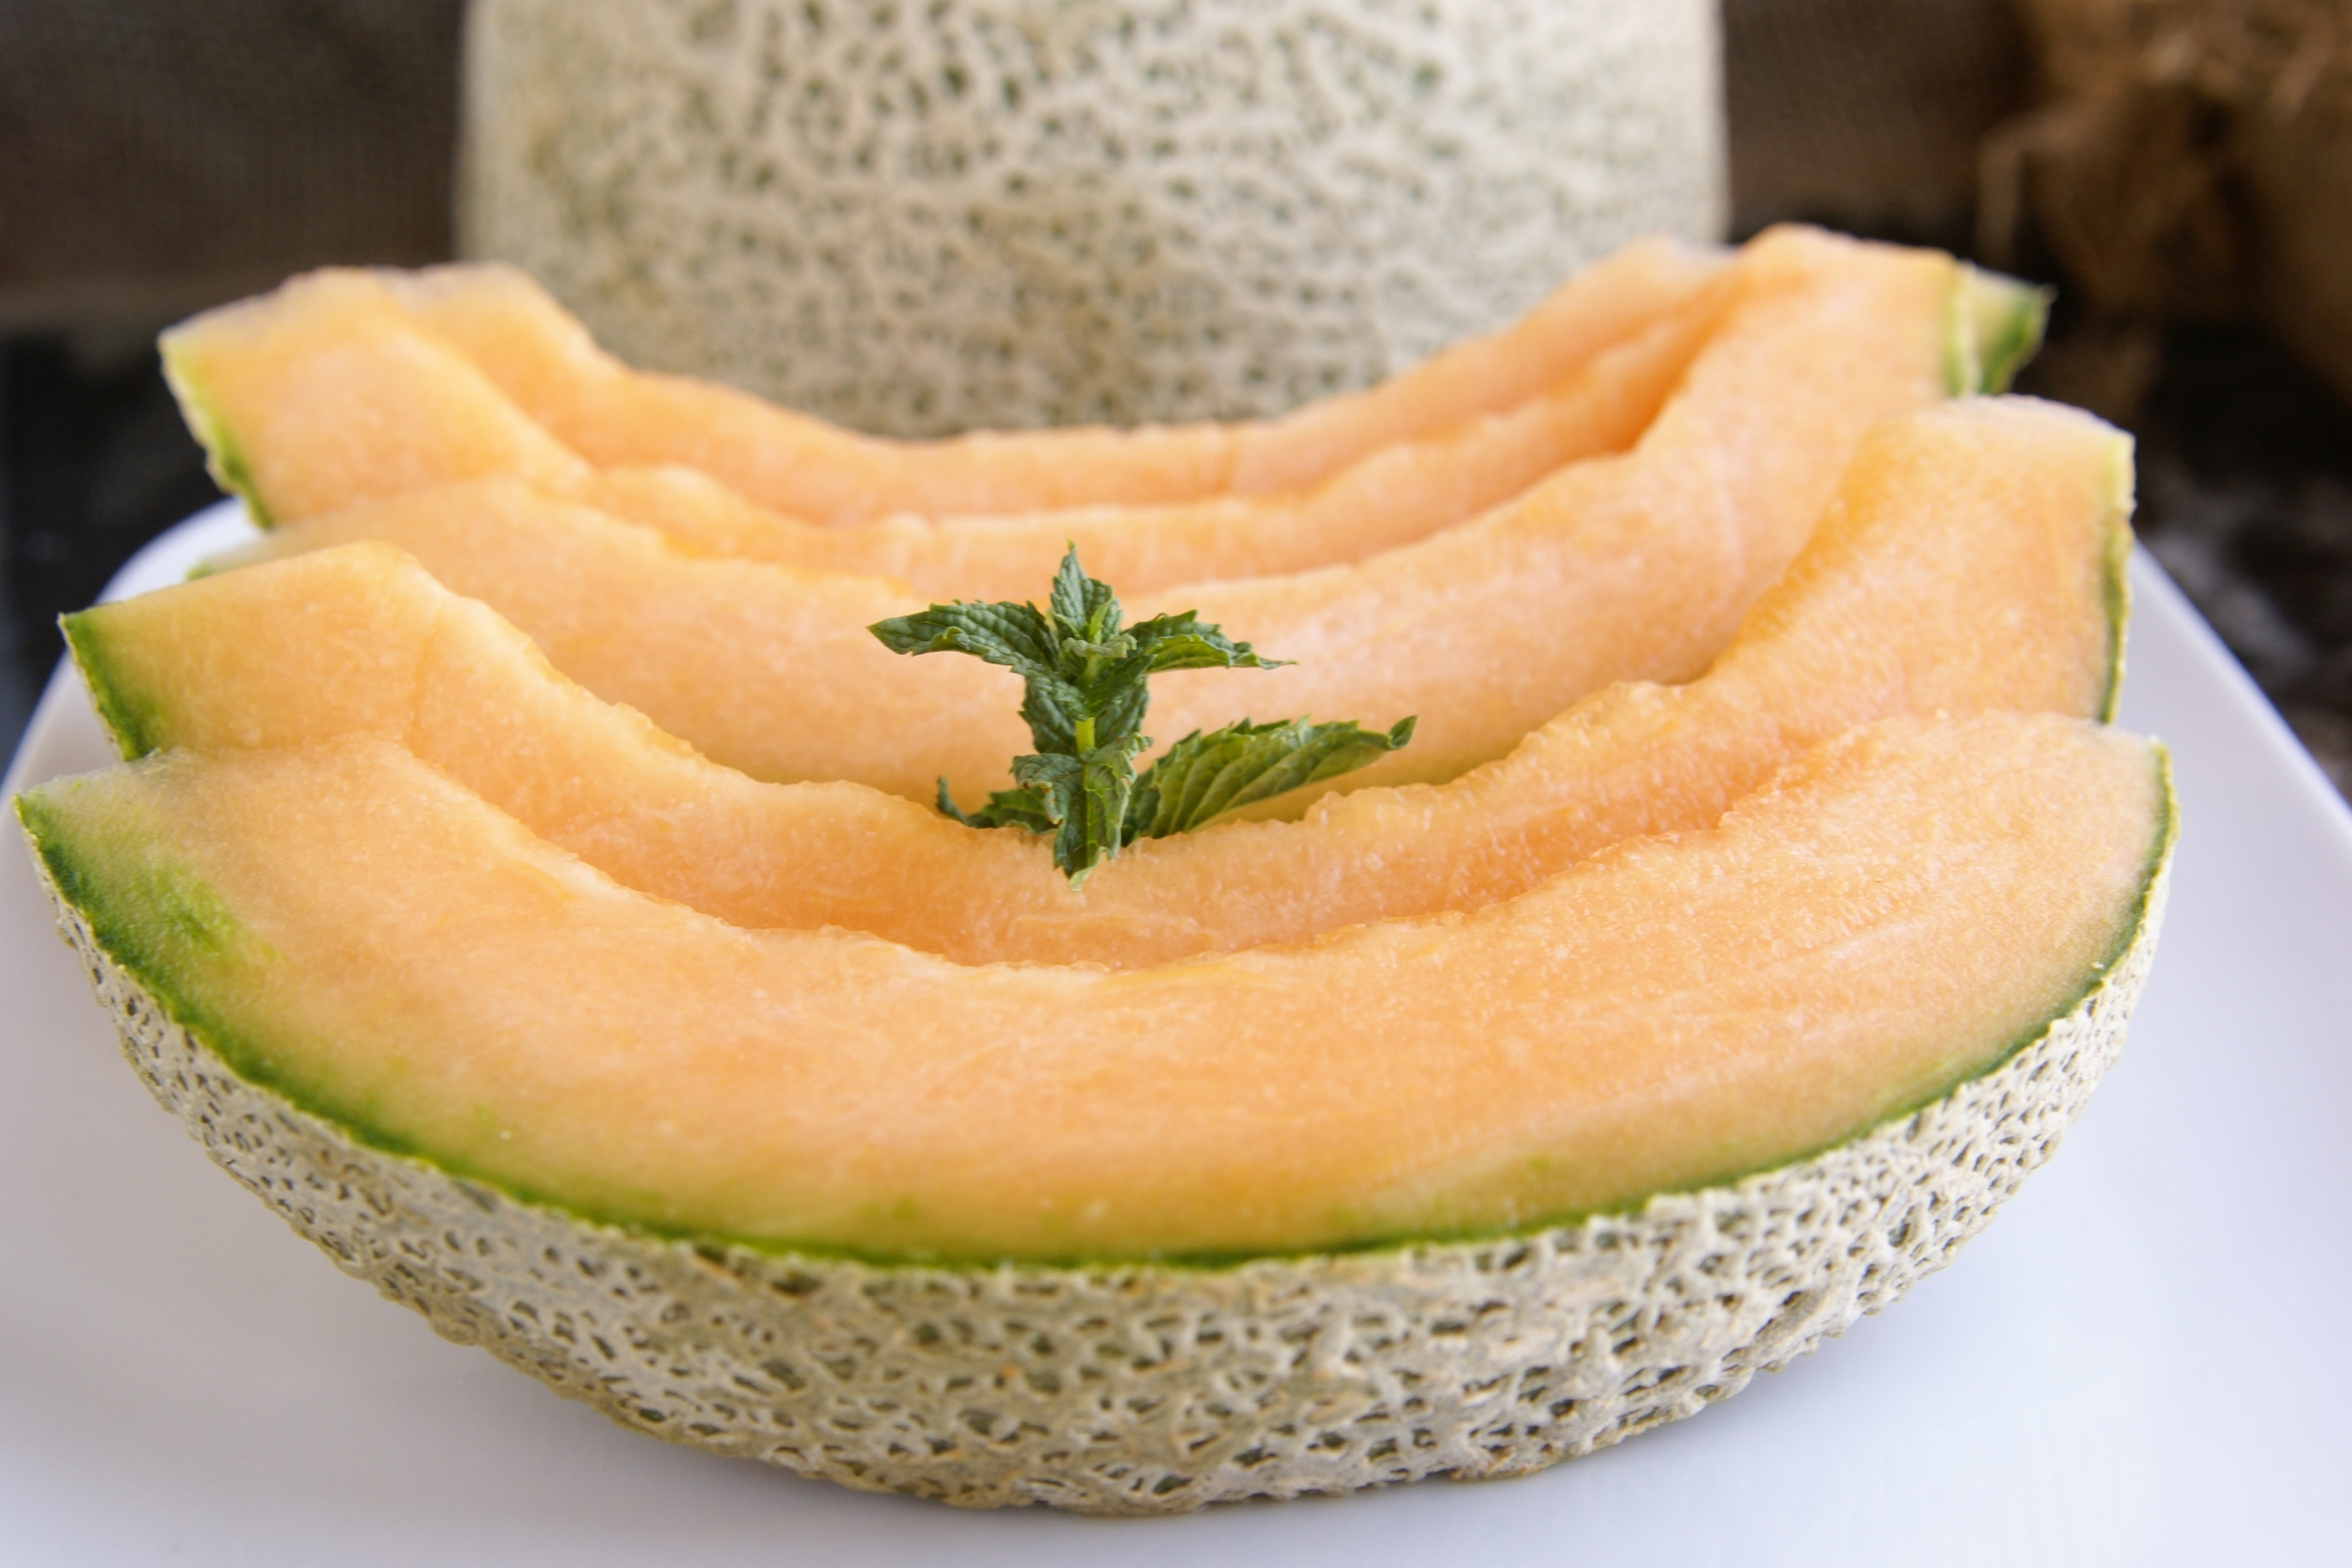 How To Tell If Cantaloupe Has Spoiled See more ideas about cantaloupe, cantaloupe recipes, healthy. leaftv